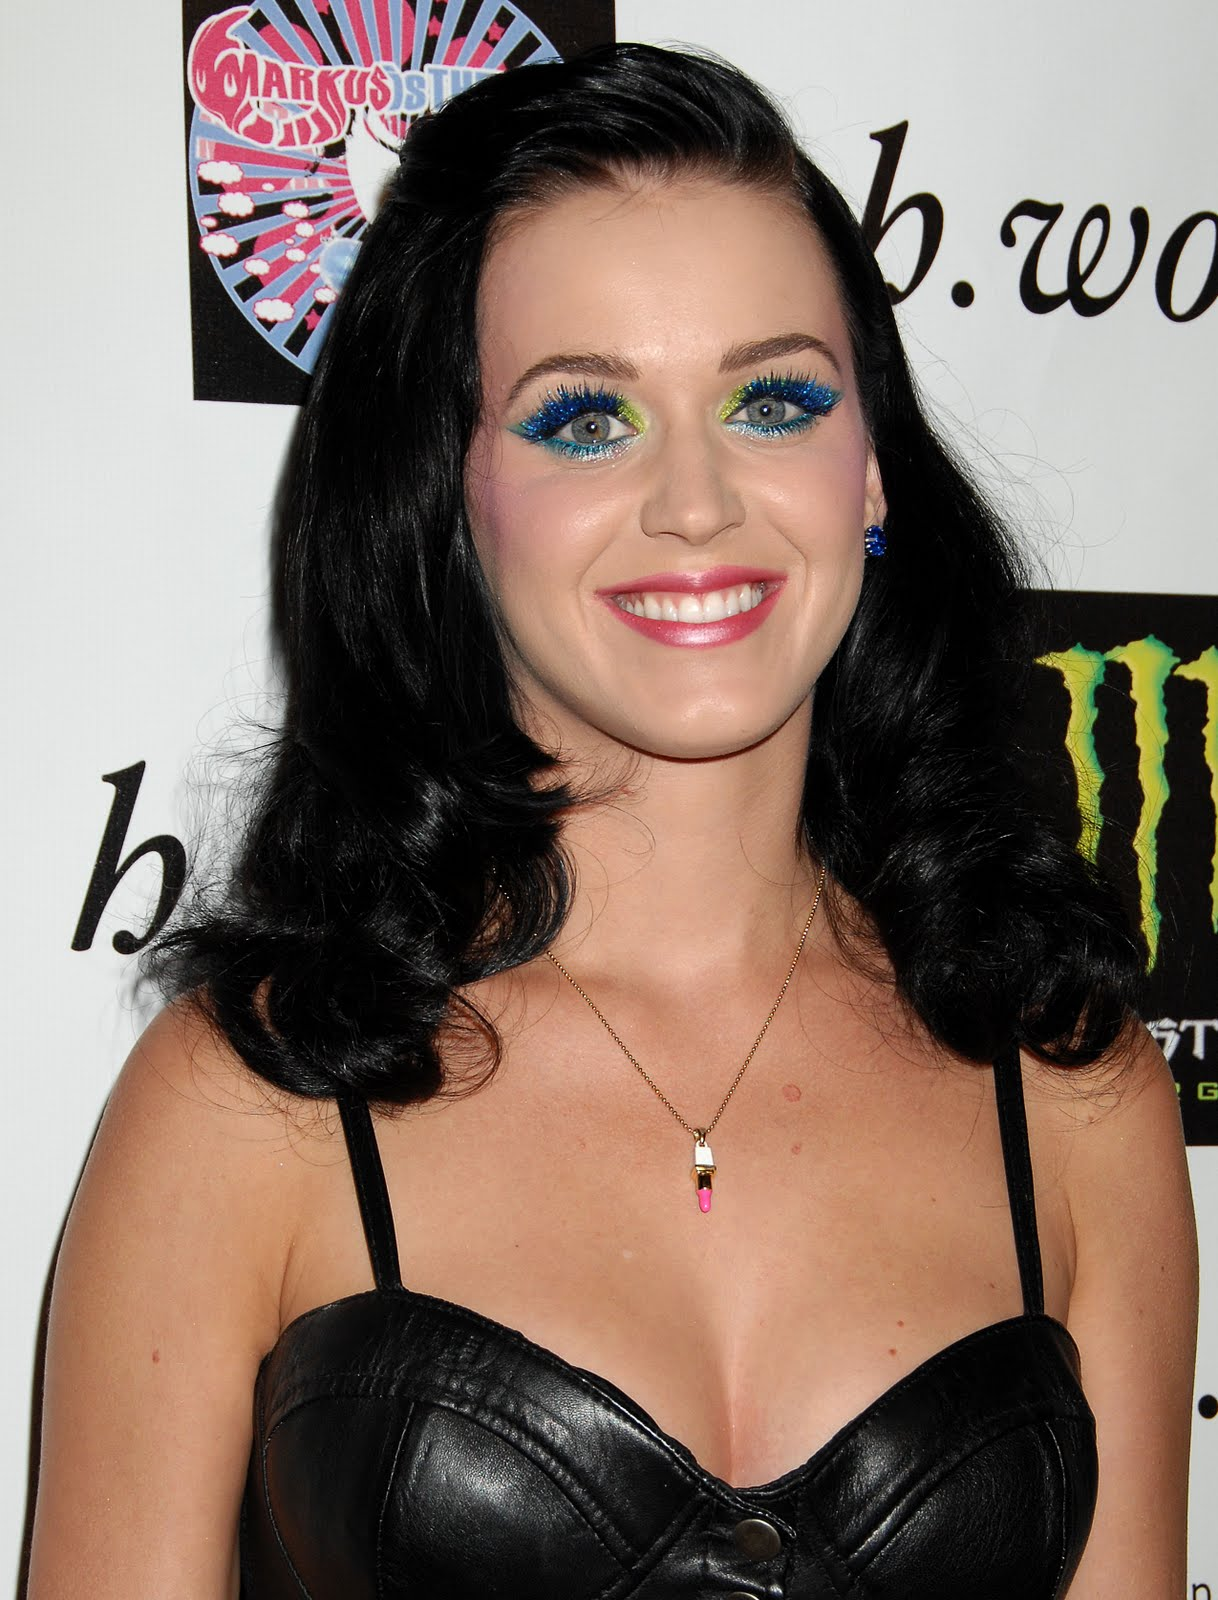 perry point christian girl personals Her single is still topping charts worldwide, but katy perry's i kissed a girl has sparked a personal attack on the provocative singer from her own parents.